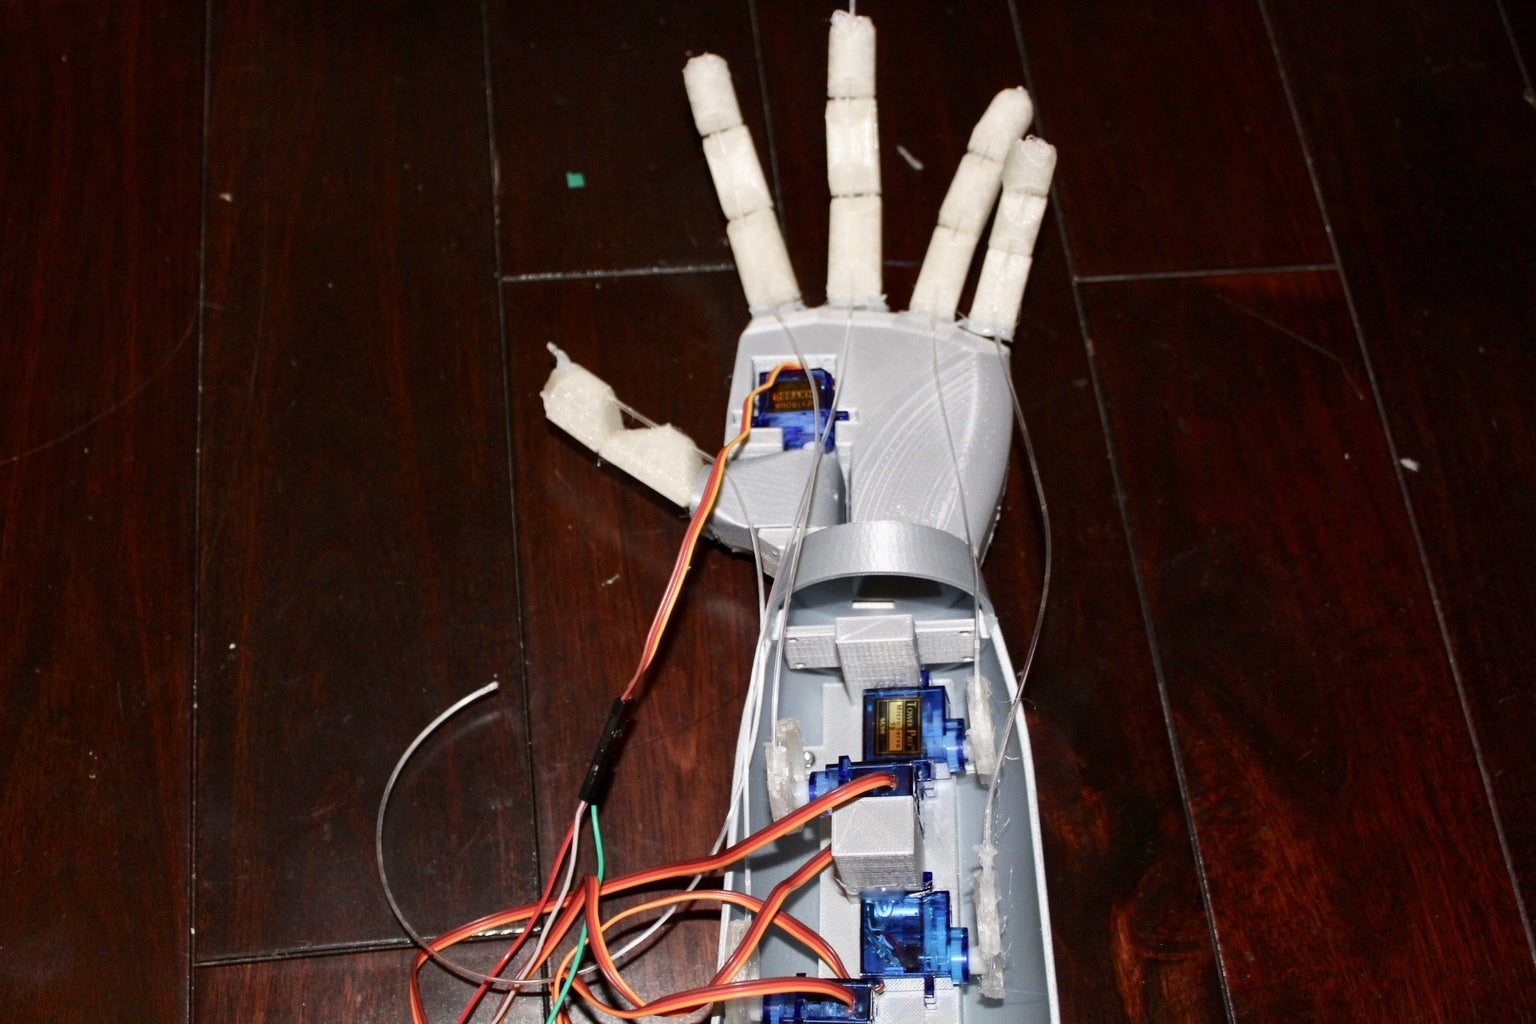 3D Printed Robotic Hand With Bluetooth Control